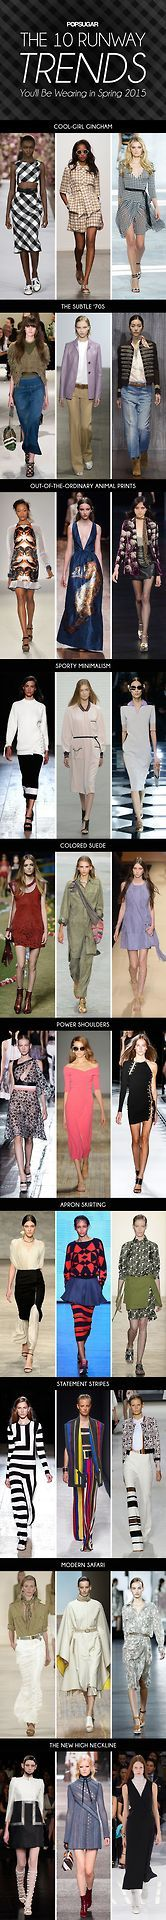 Your official Spring 2015 trend report.